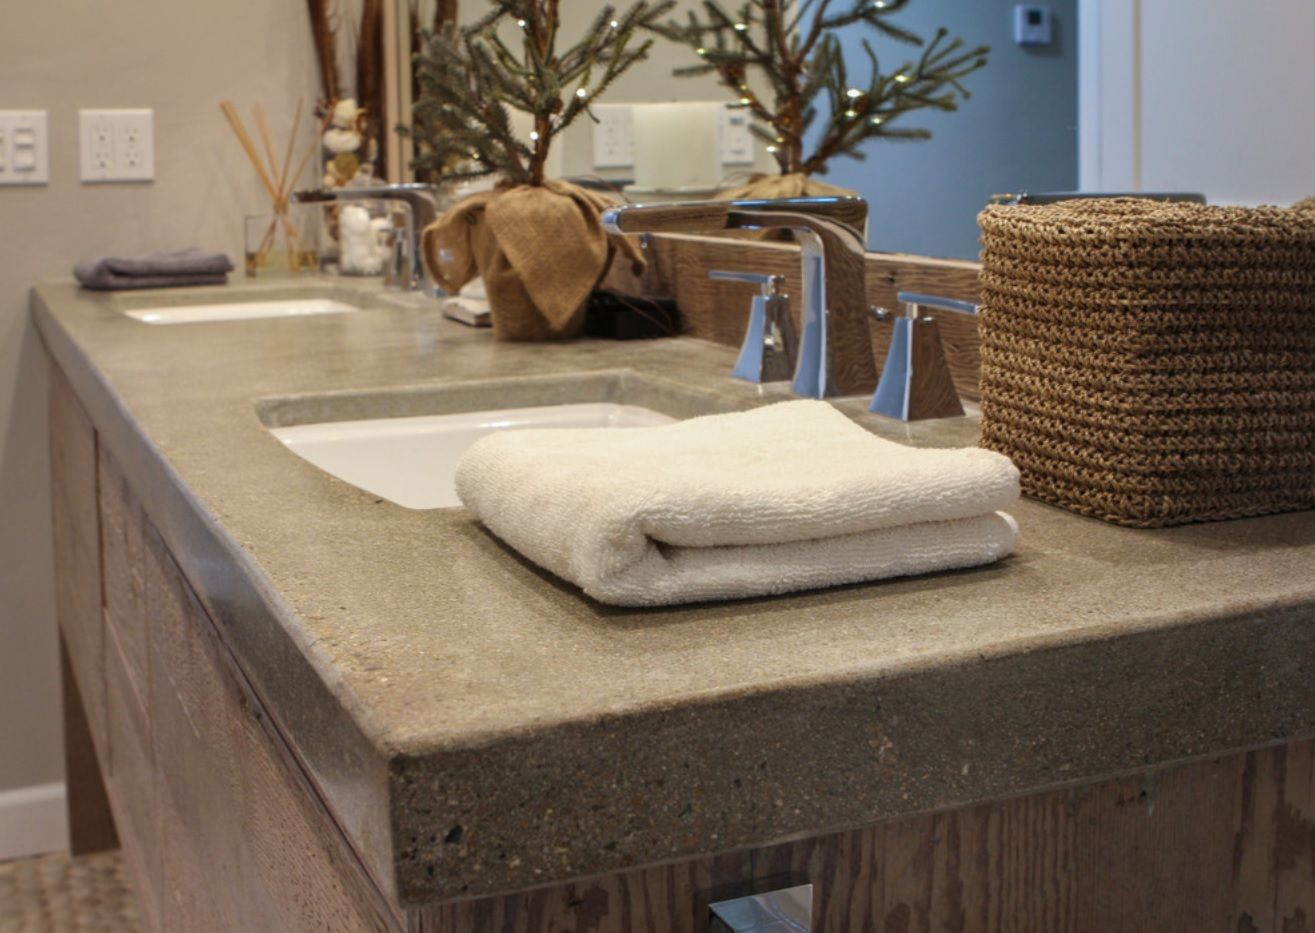 DIY Pouring Concrete Countertops. Interior Usage, Photos, Ideas. Bathroom top of the vanity